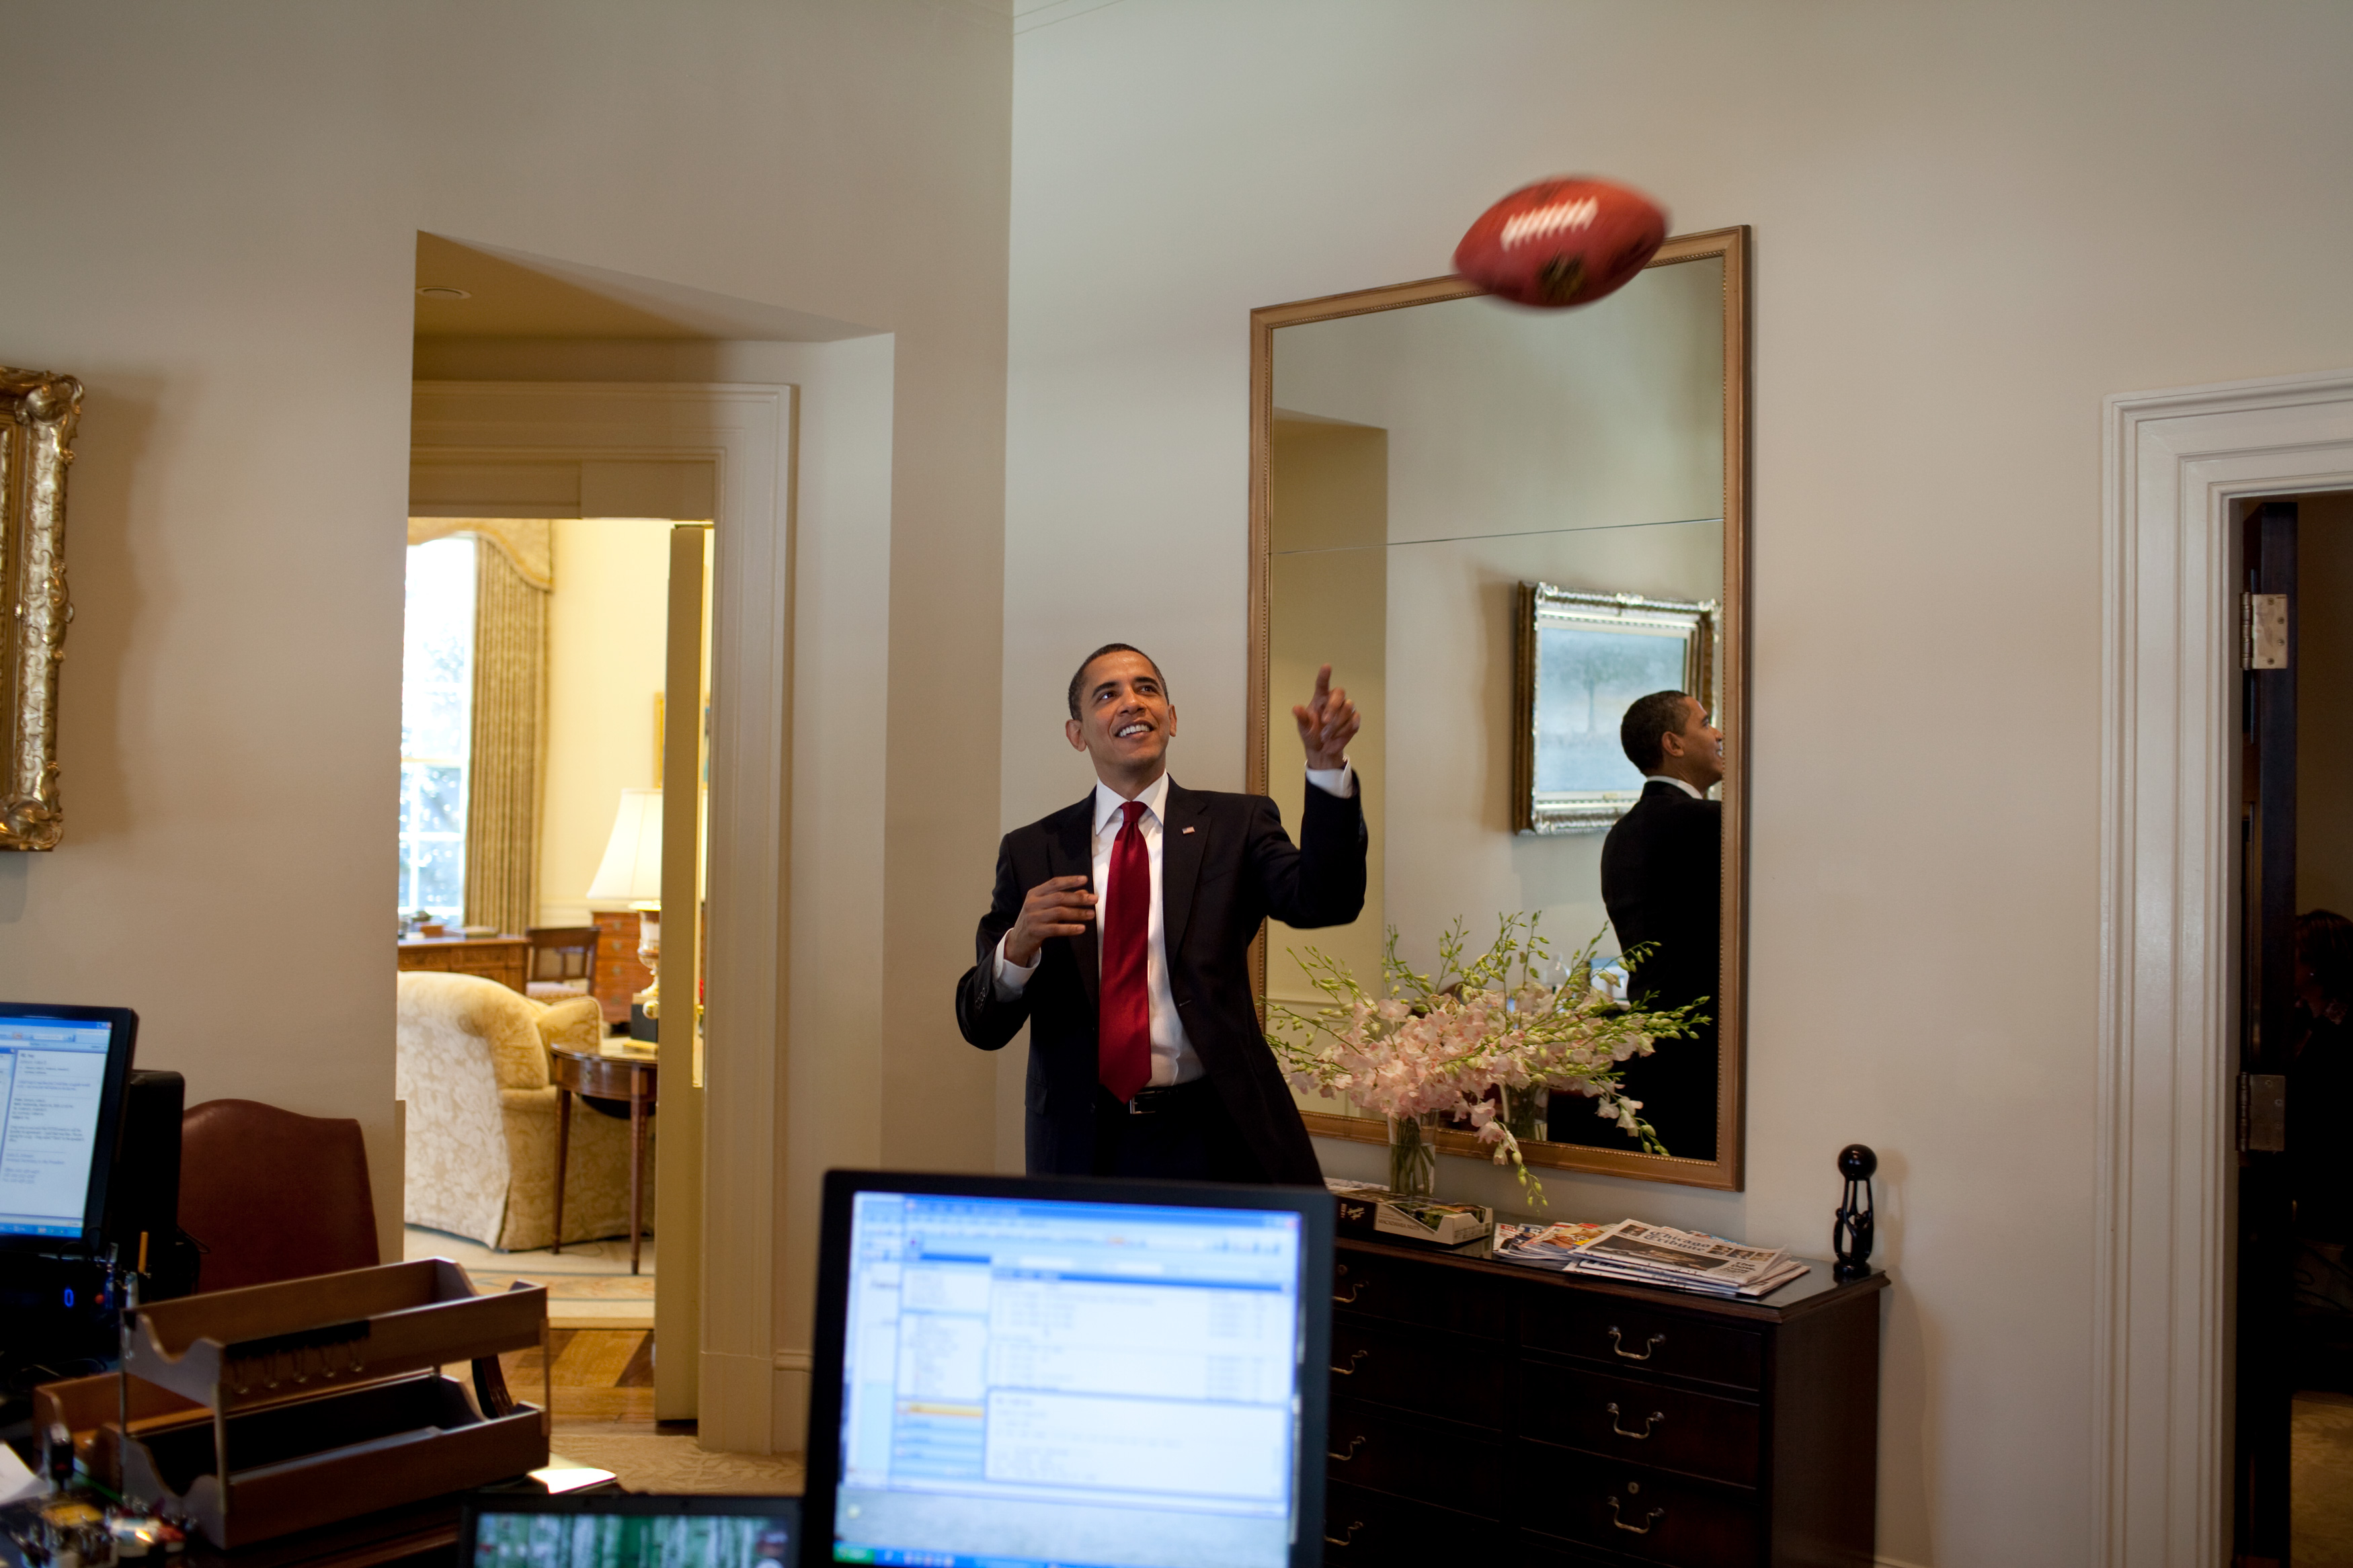 west wing oval office. File:Obama Playing With A Football In The West Wing.jpg Wing Oval Office